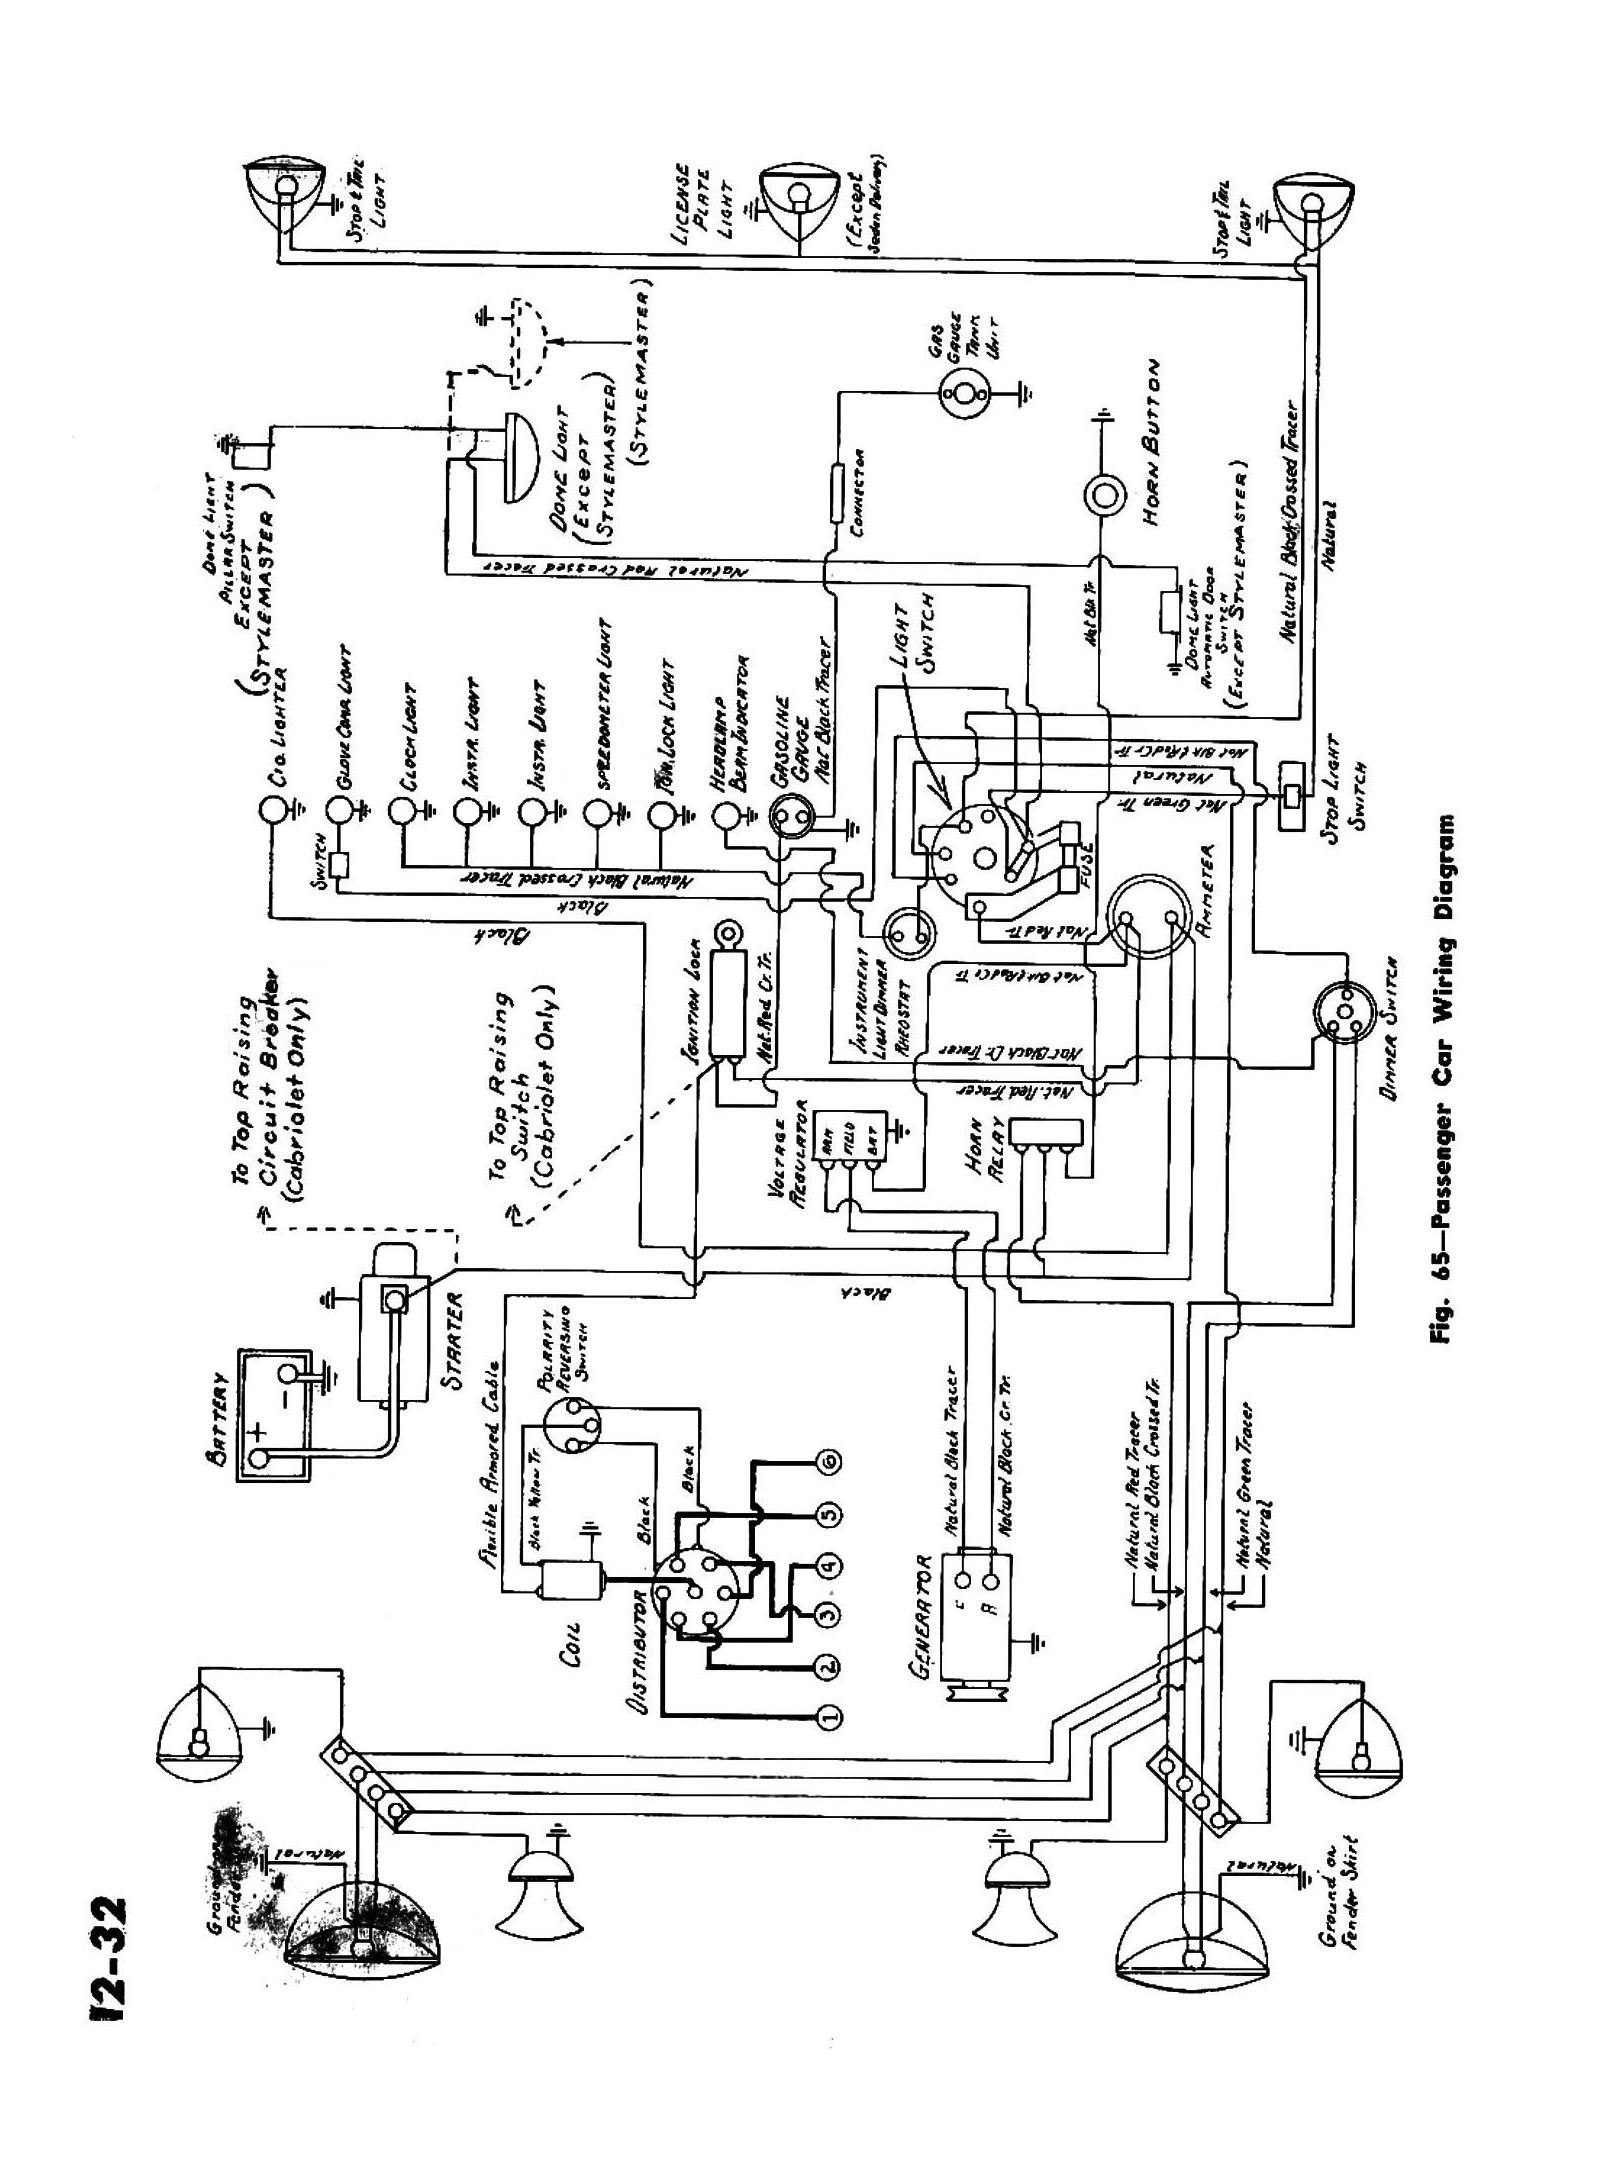 1983 Toyota Pickup Fuse Diagram Simple Guide About Wiring 83 Chevy Truck For 1986 Get Free Tail Light